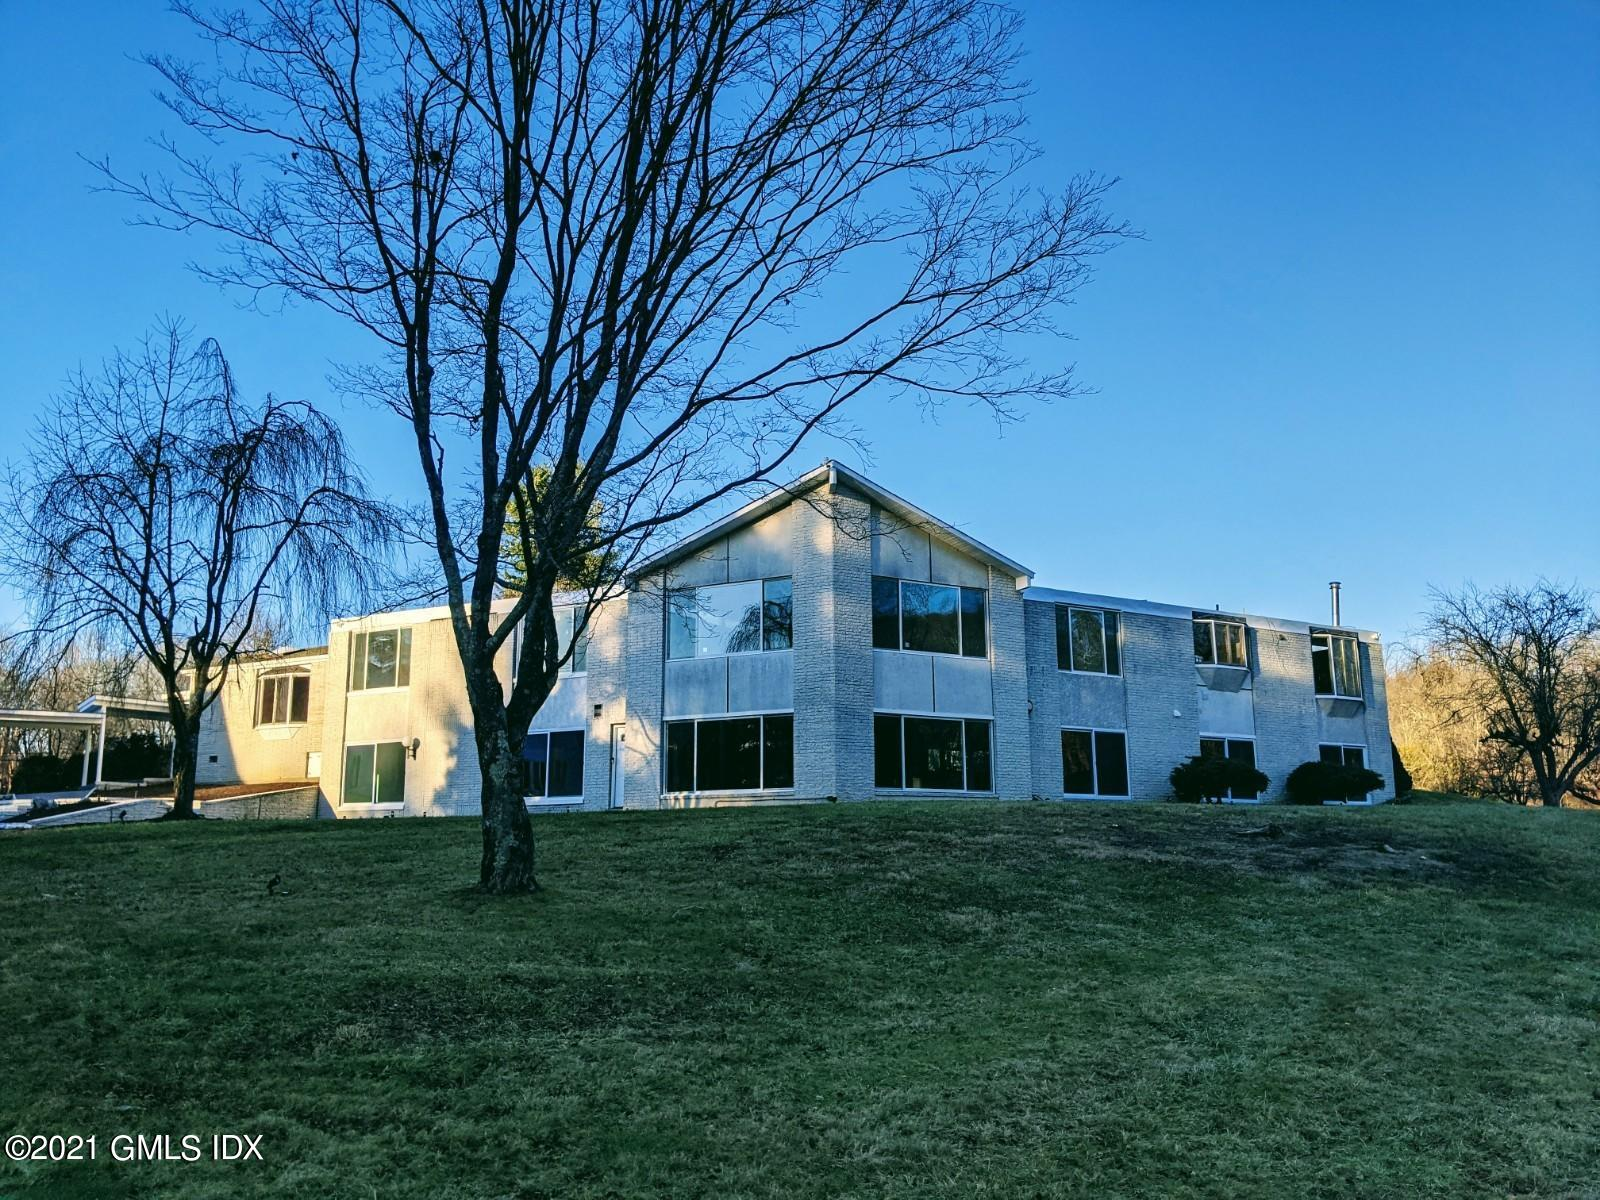 18 Dwight Lane, Greenwich, Connecticut 06831, 7 Bedrooms Bedrooms, ,4 BathroomsBathrooms,Single family,For Rent,Dwight,111969